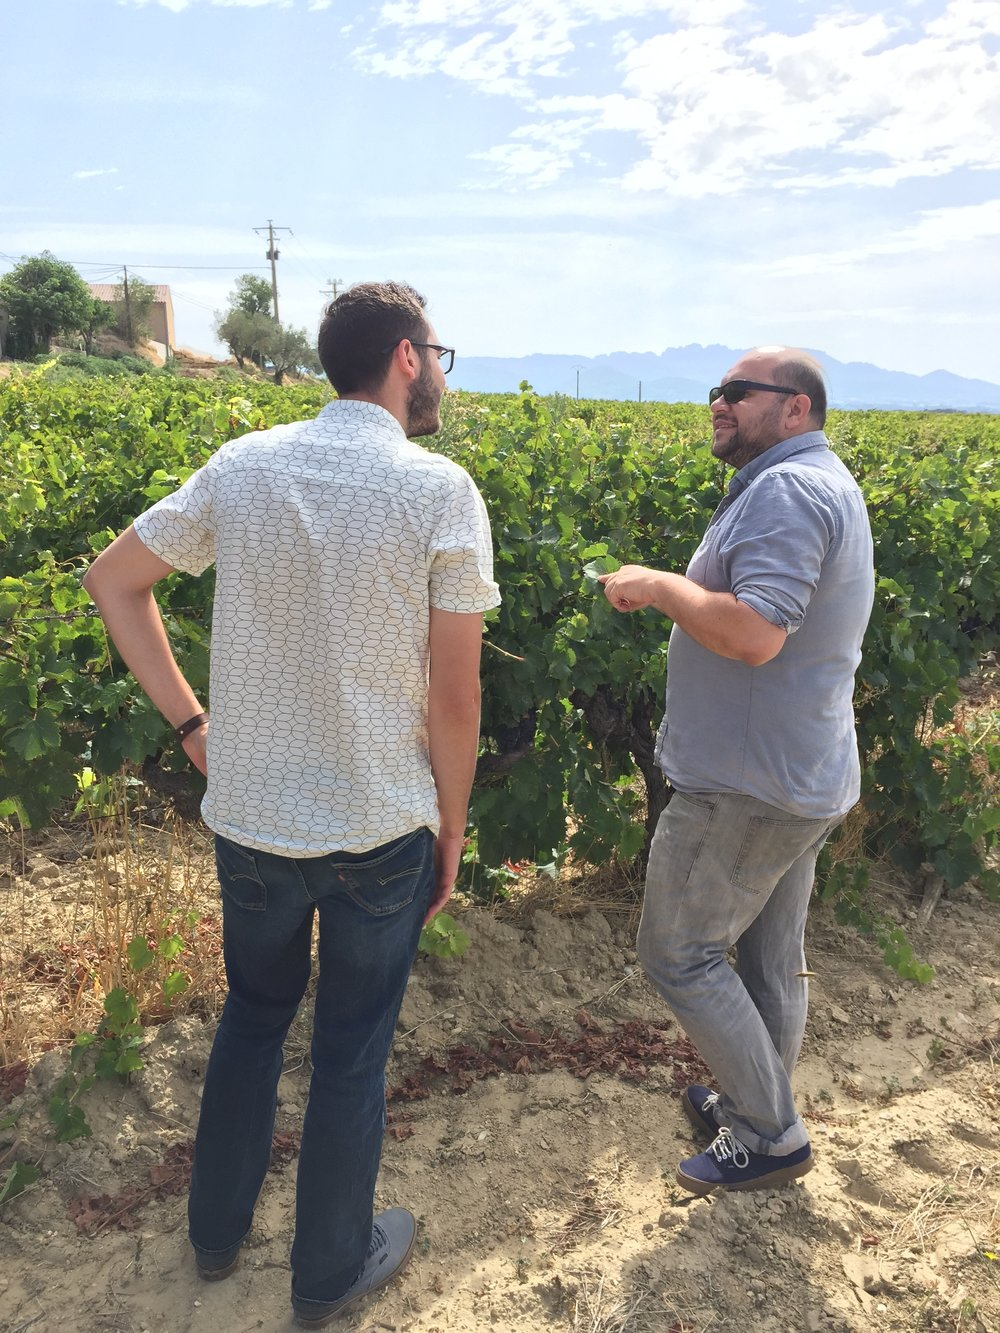 Wilfried and me in his fields, discussing harvest